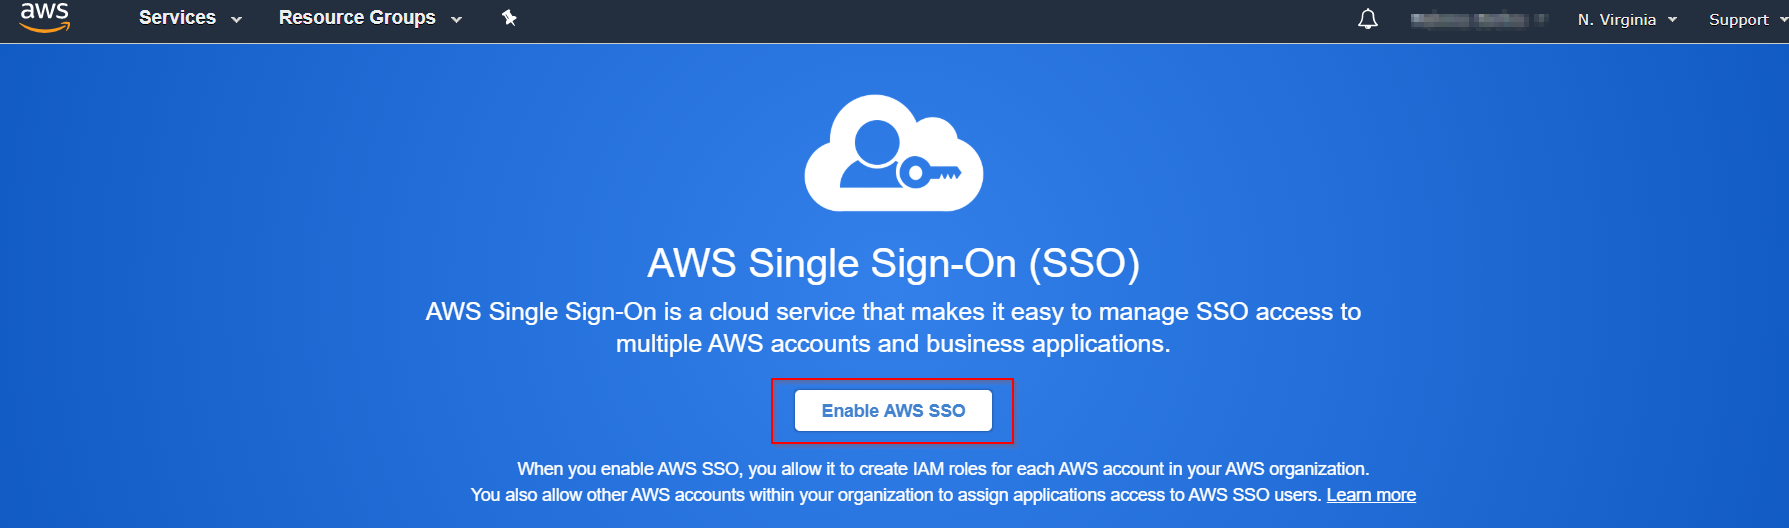 SAML Single Sign On(SSO) using AWS Identity Provider, Enable AWS SSO